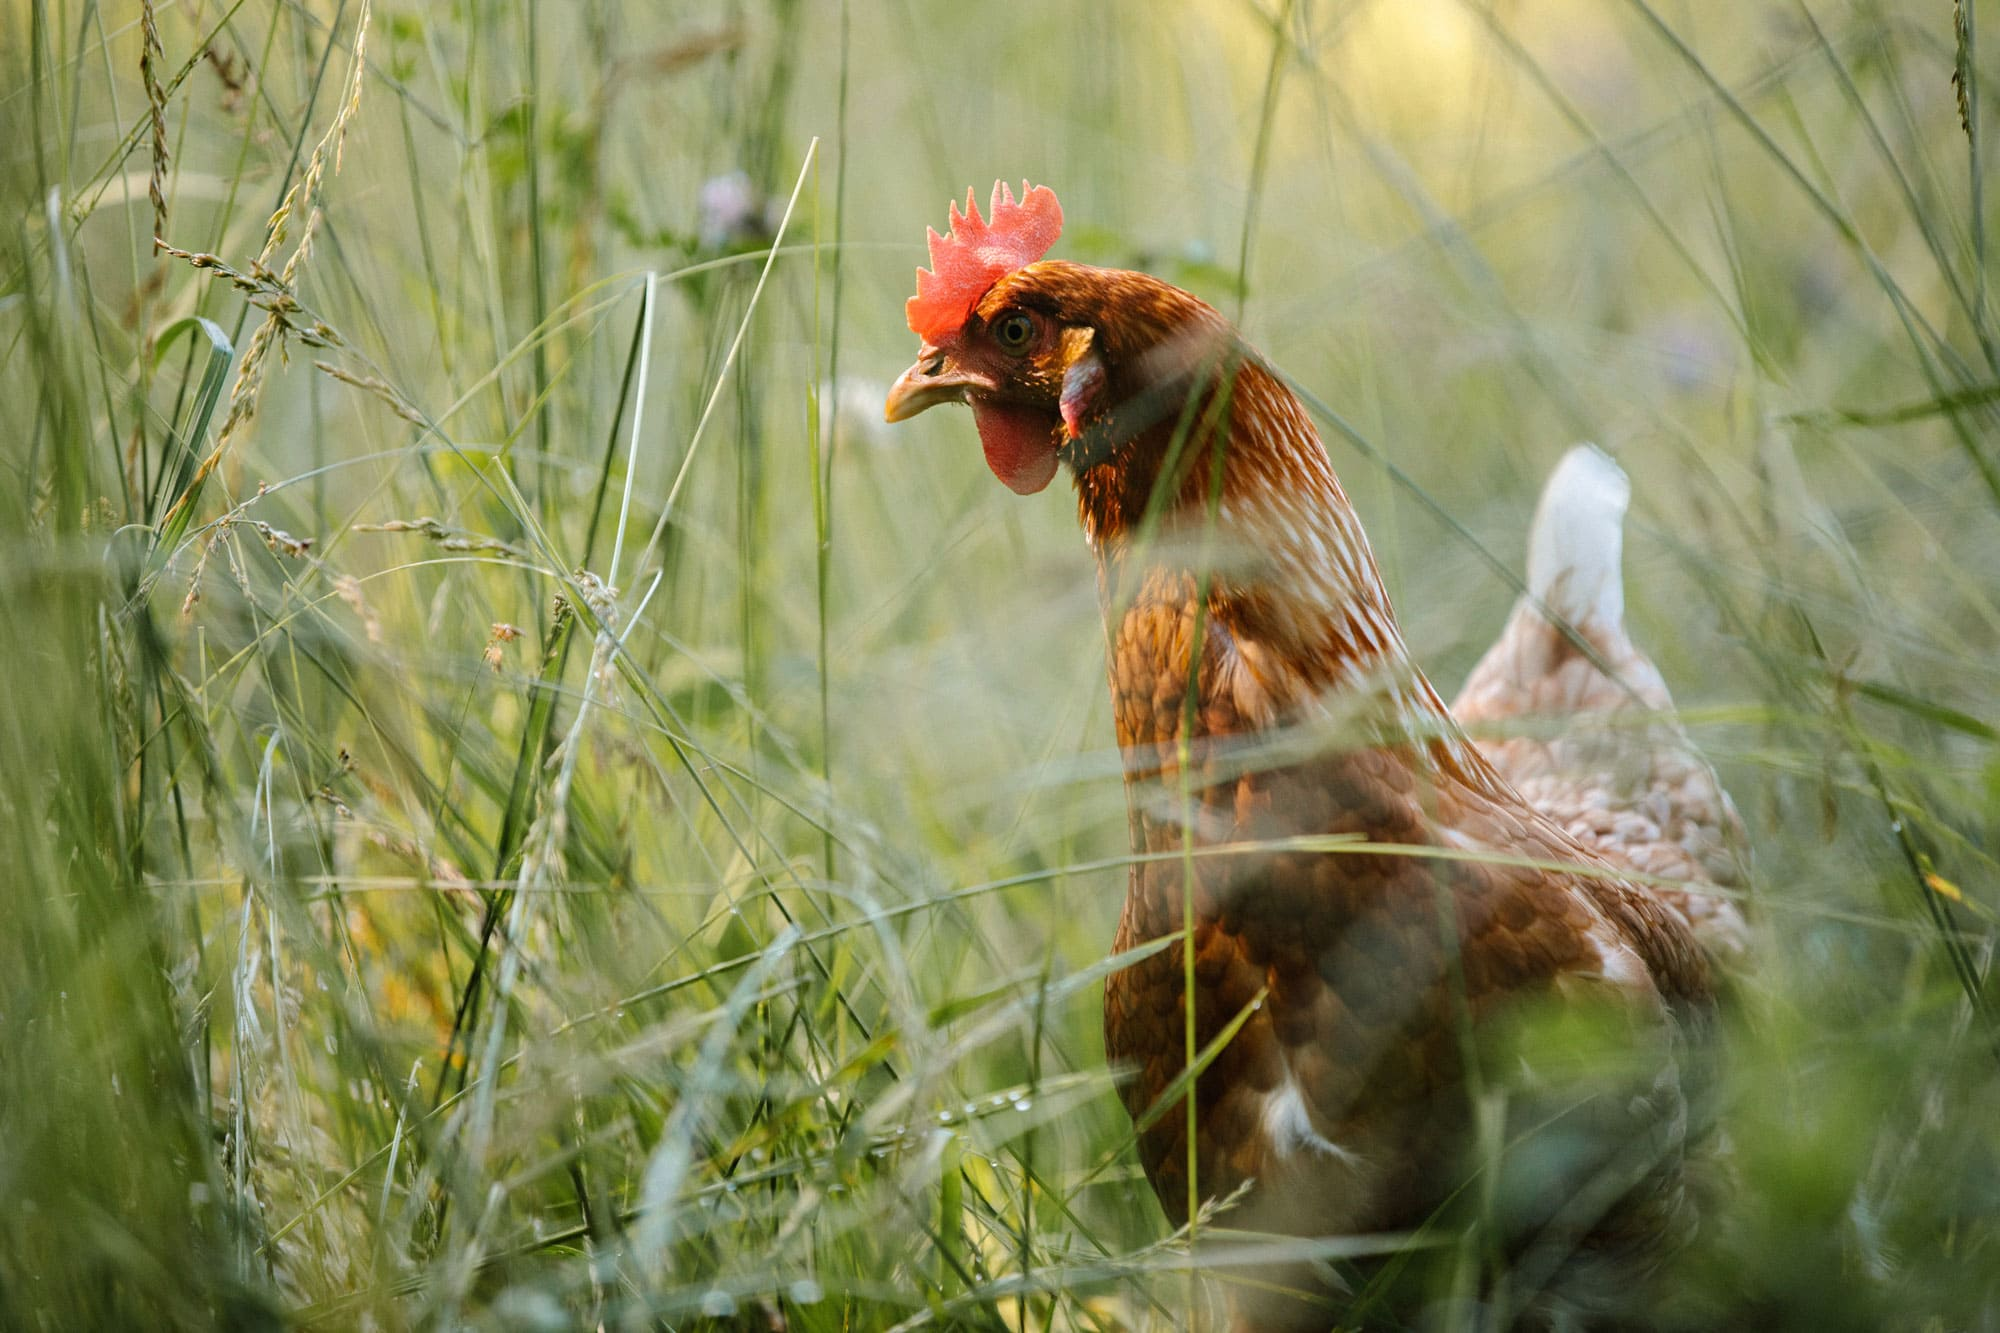 A photo of a chicken in a grassy field